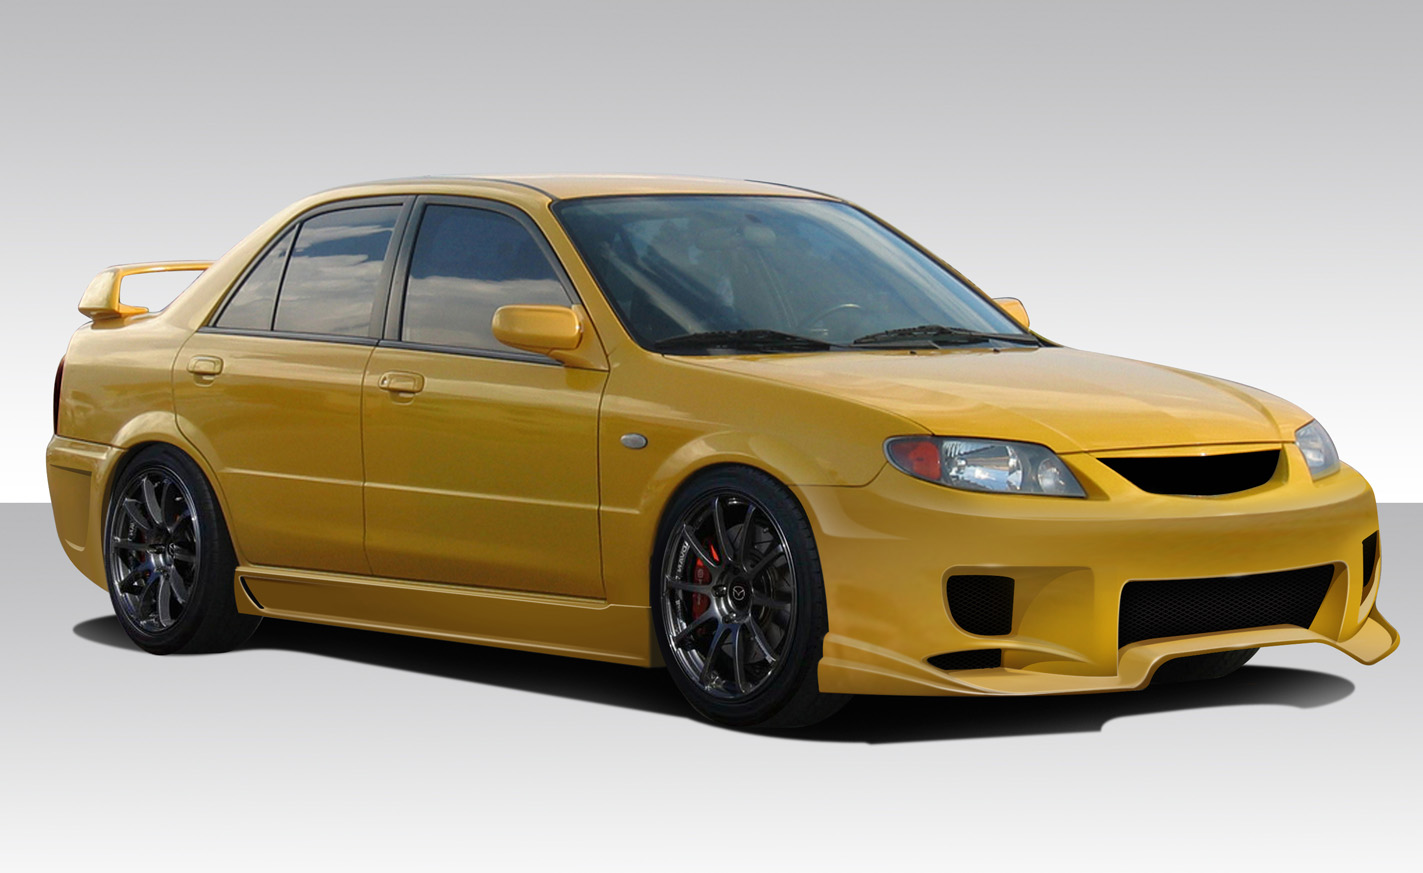 01 03 mazda protege aggressive duraflex full body kit. Black Bedroom Furniture Sets. Home Design Ideas